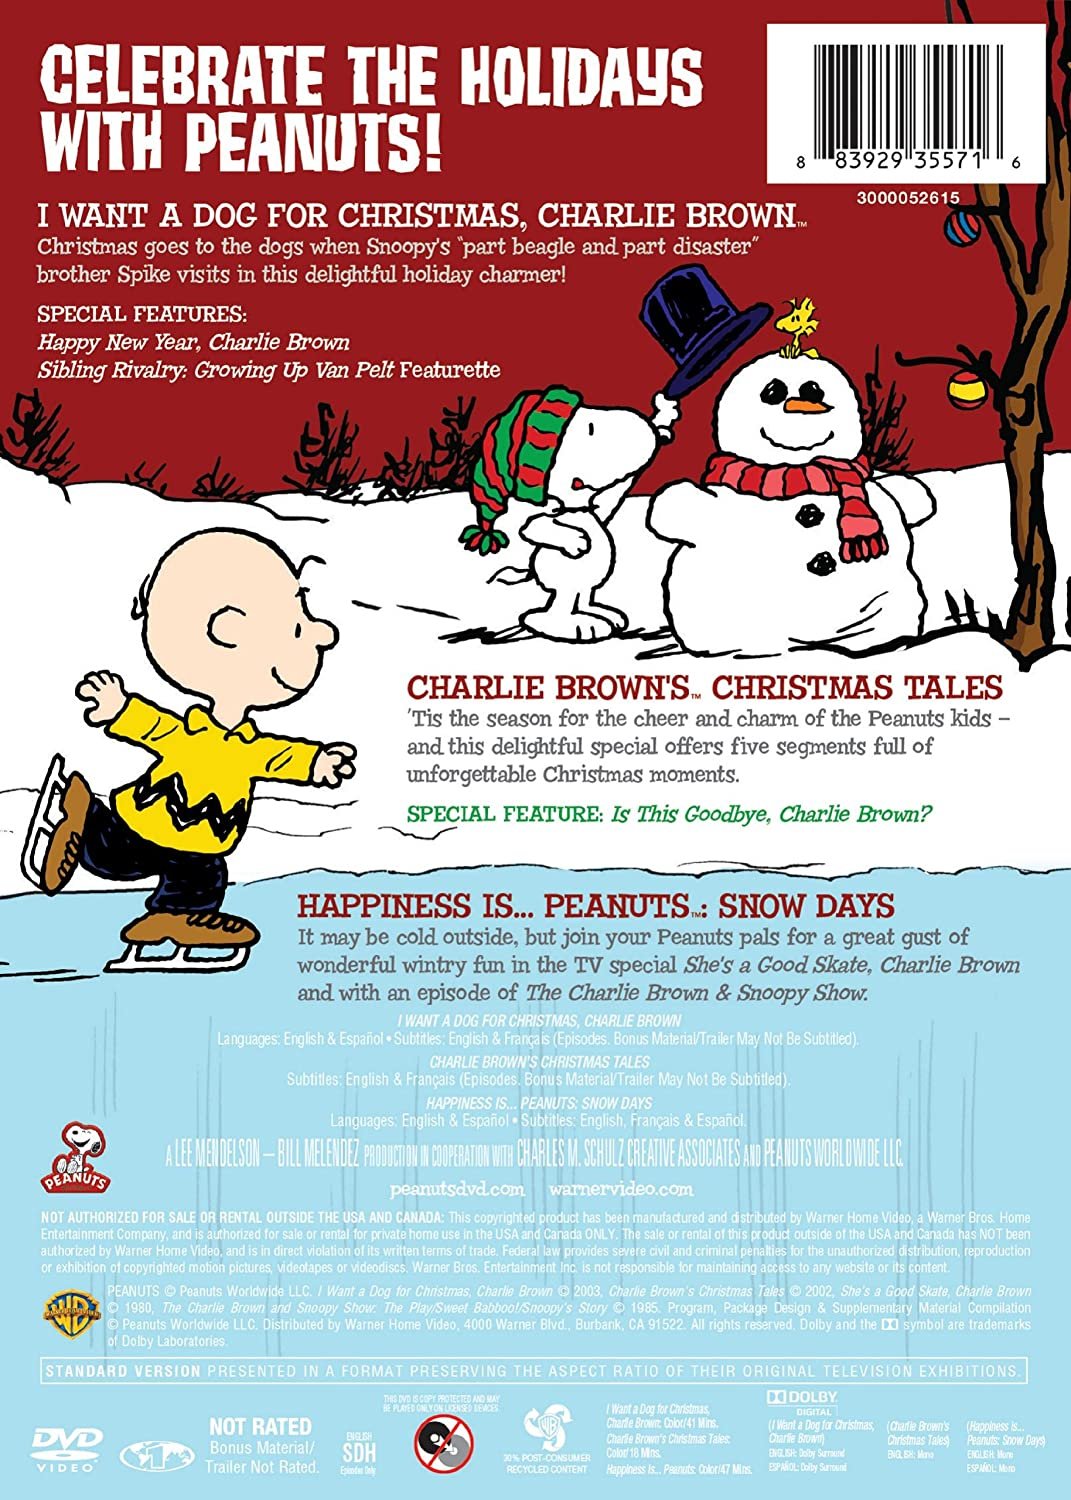 Peanuts Characters Christmas Images